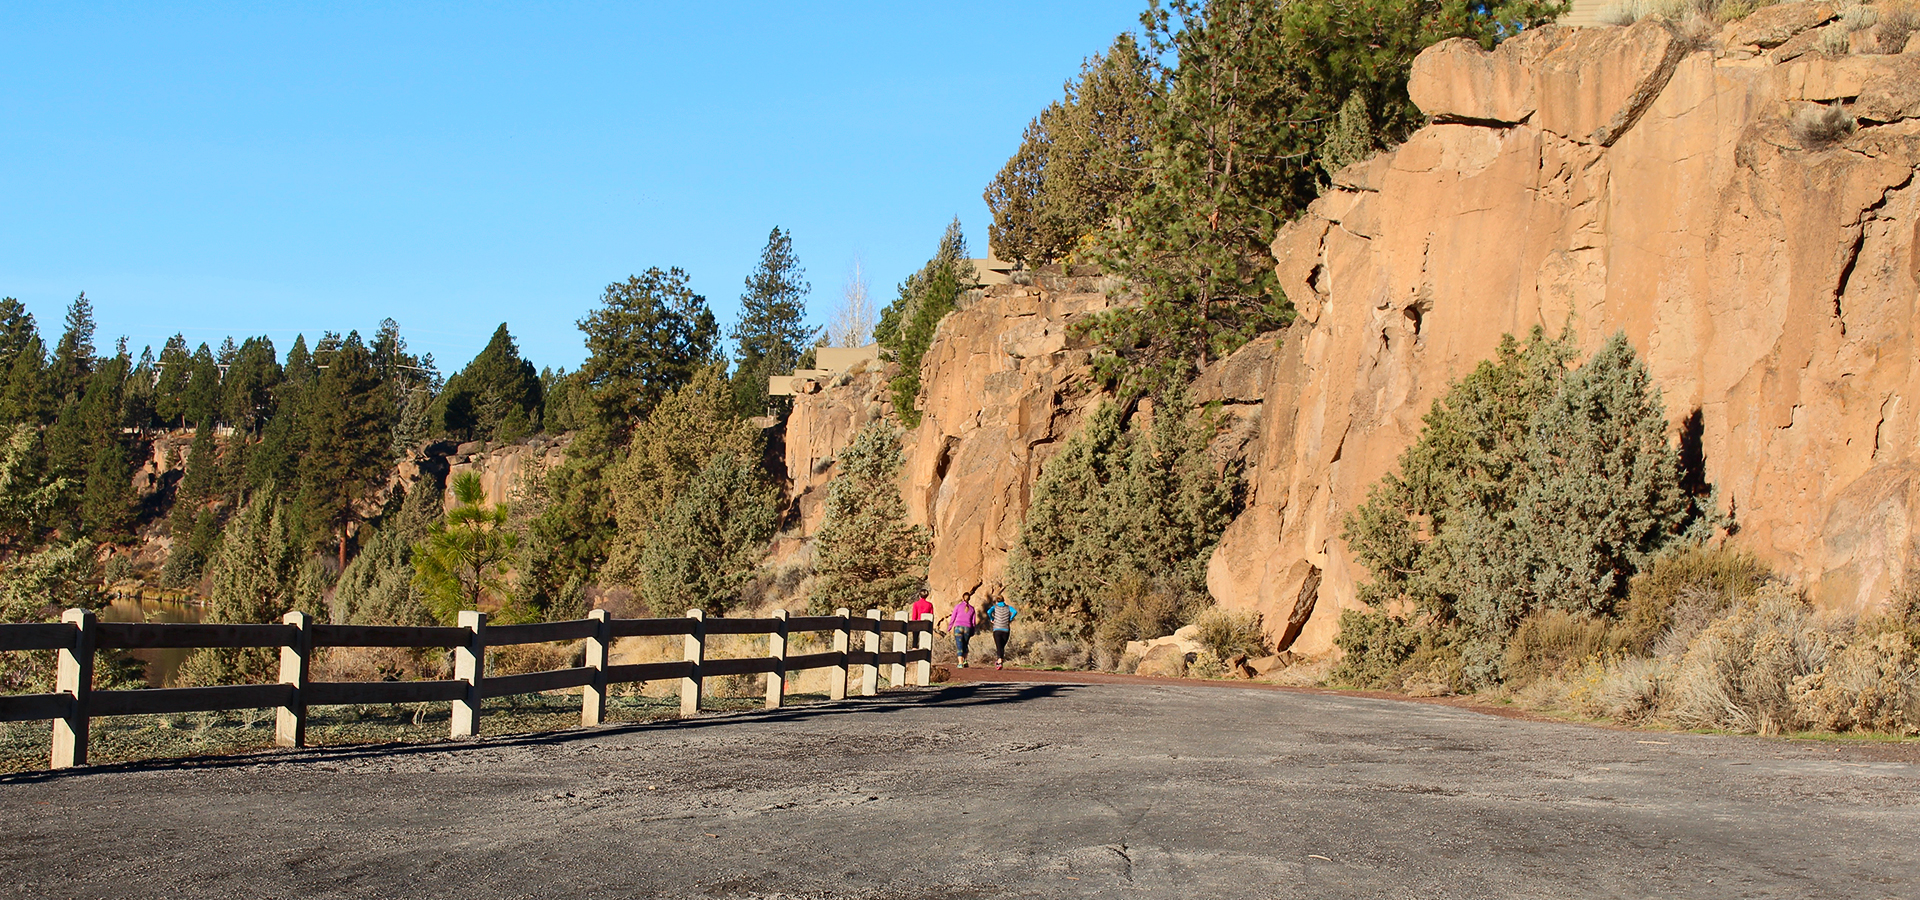 Image of the soft-surface path along the cliffs in the Farewell Bend portion of the Deschutes River Trail.